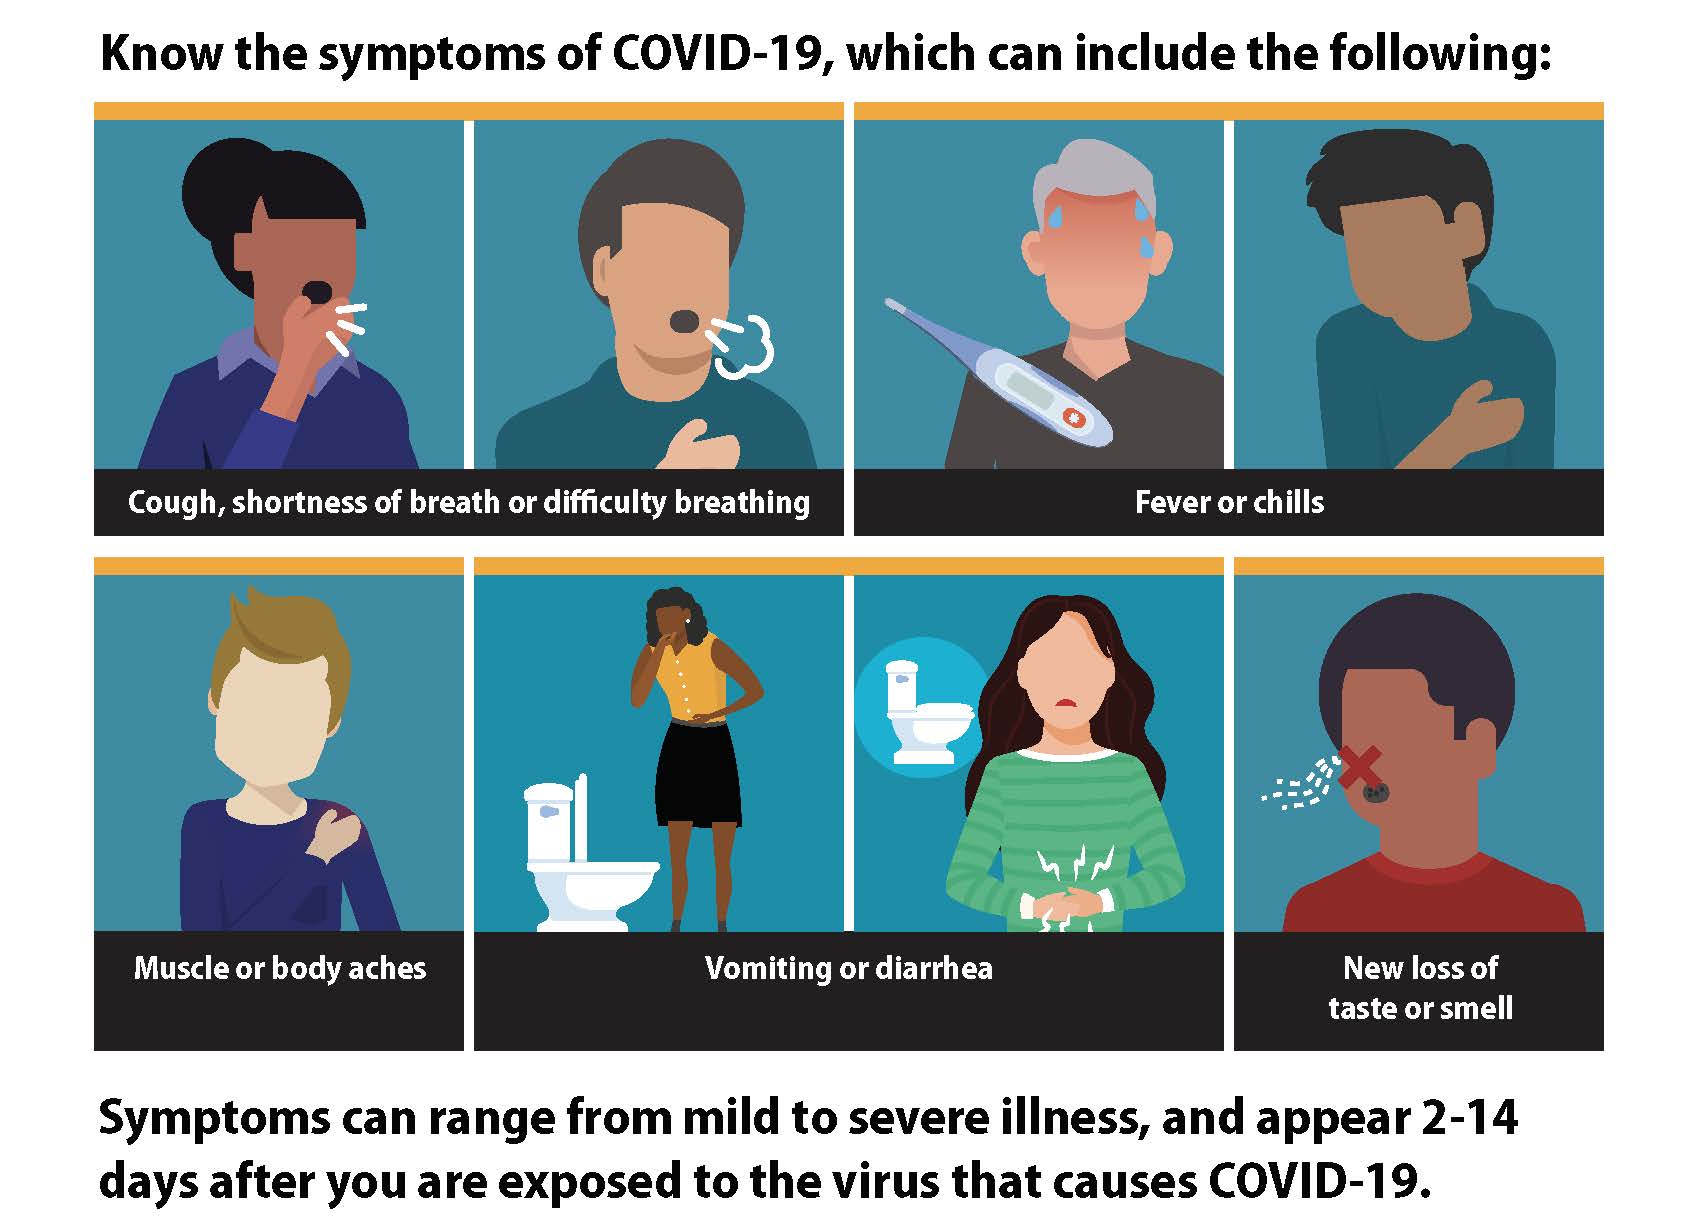 Symptoms of Covid 19 inlace cough, shortness of breath, difficulty breathing, fever or chills, muscle or body aches, vomiting or diarrhea, new loss of taste or smell